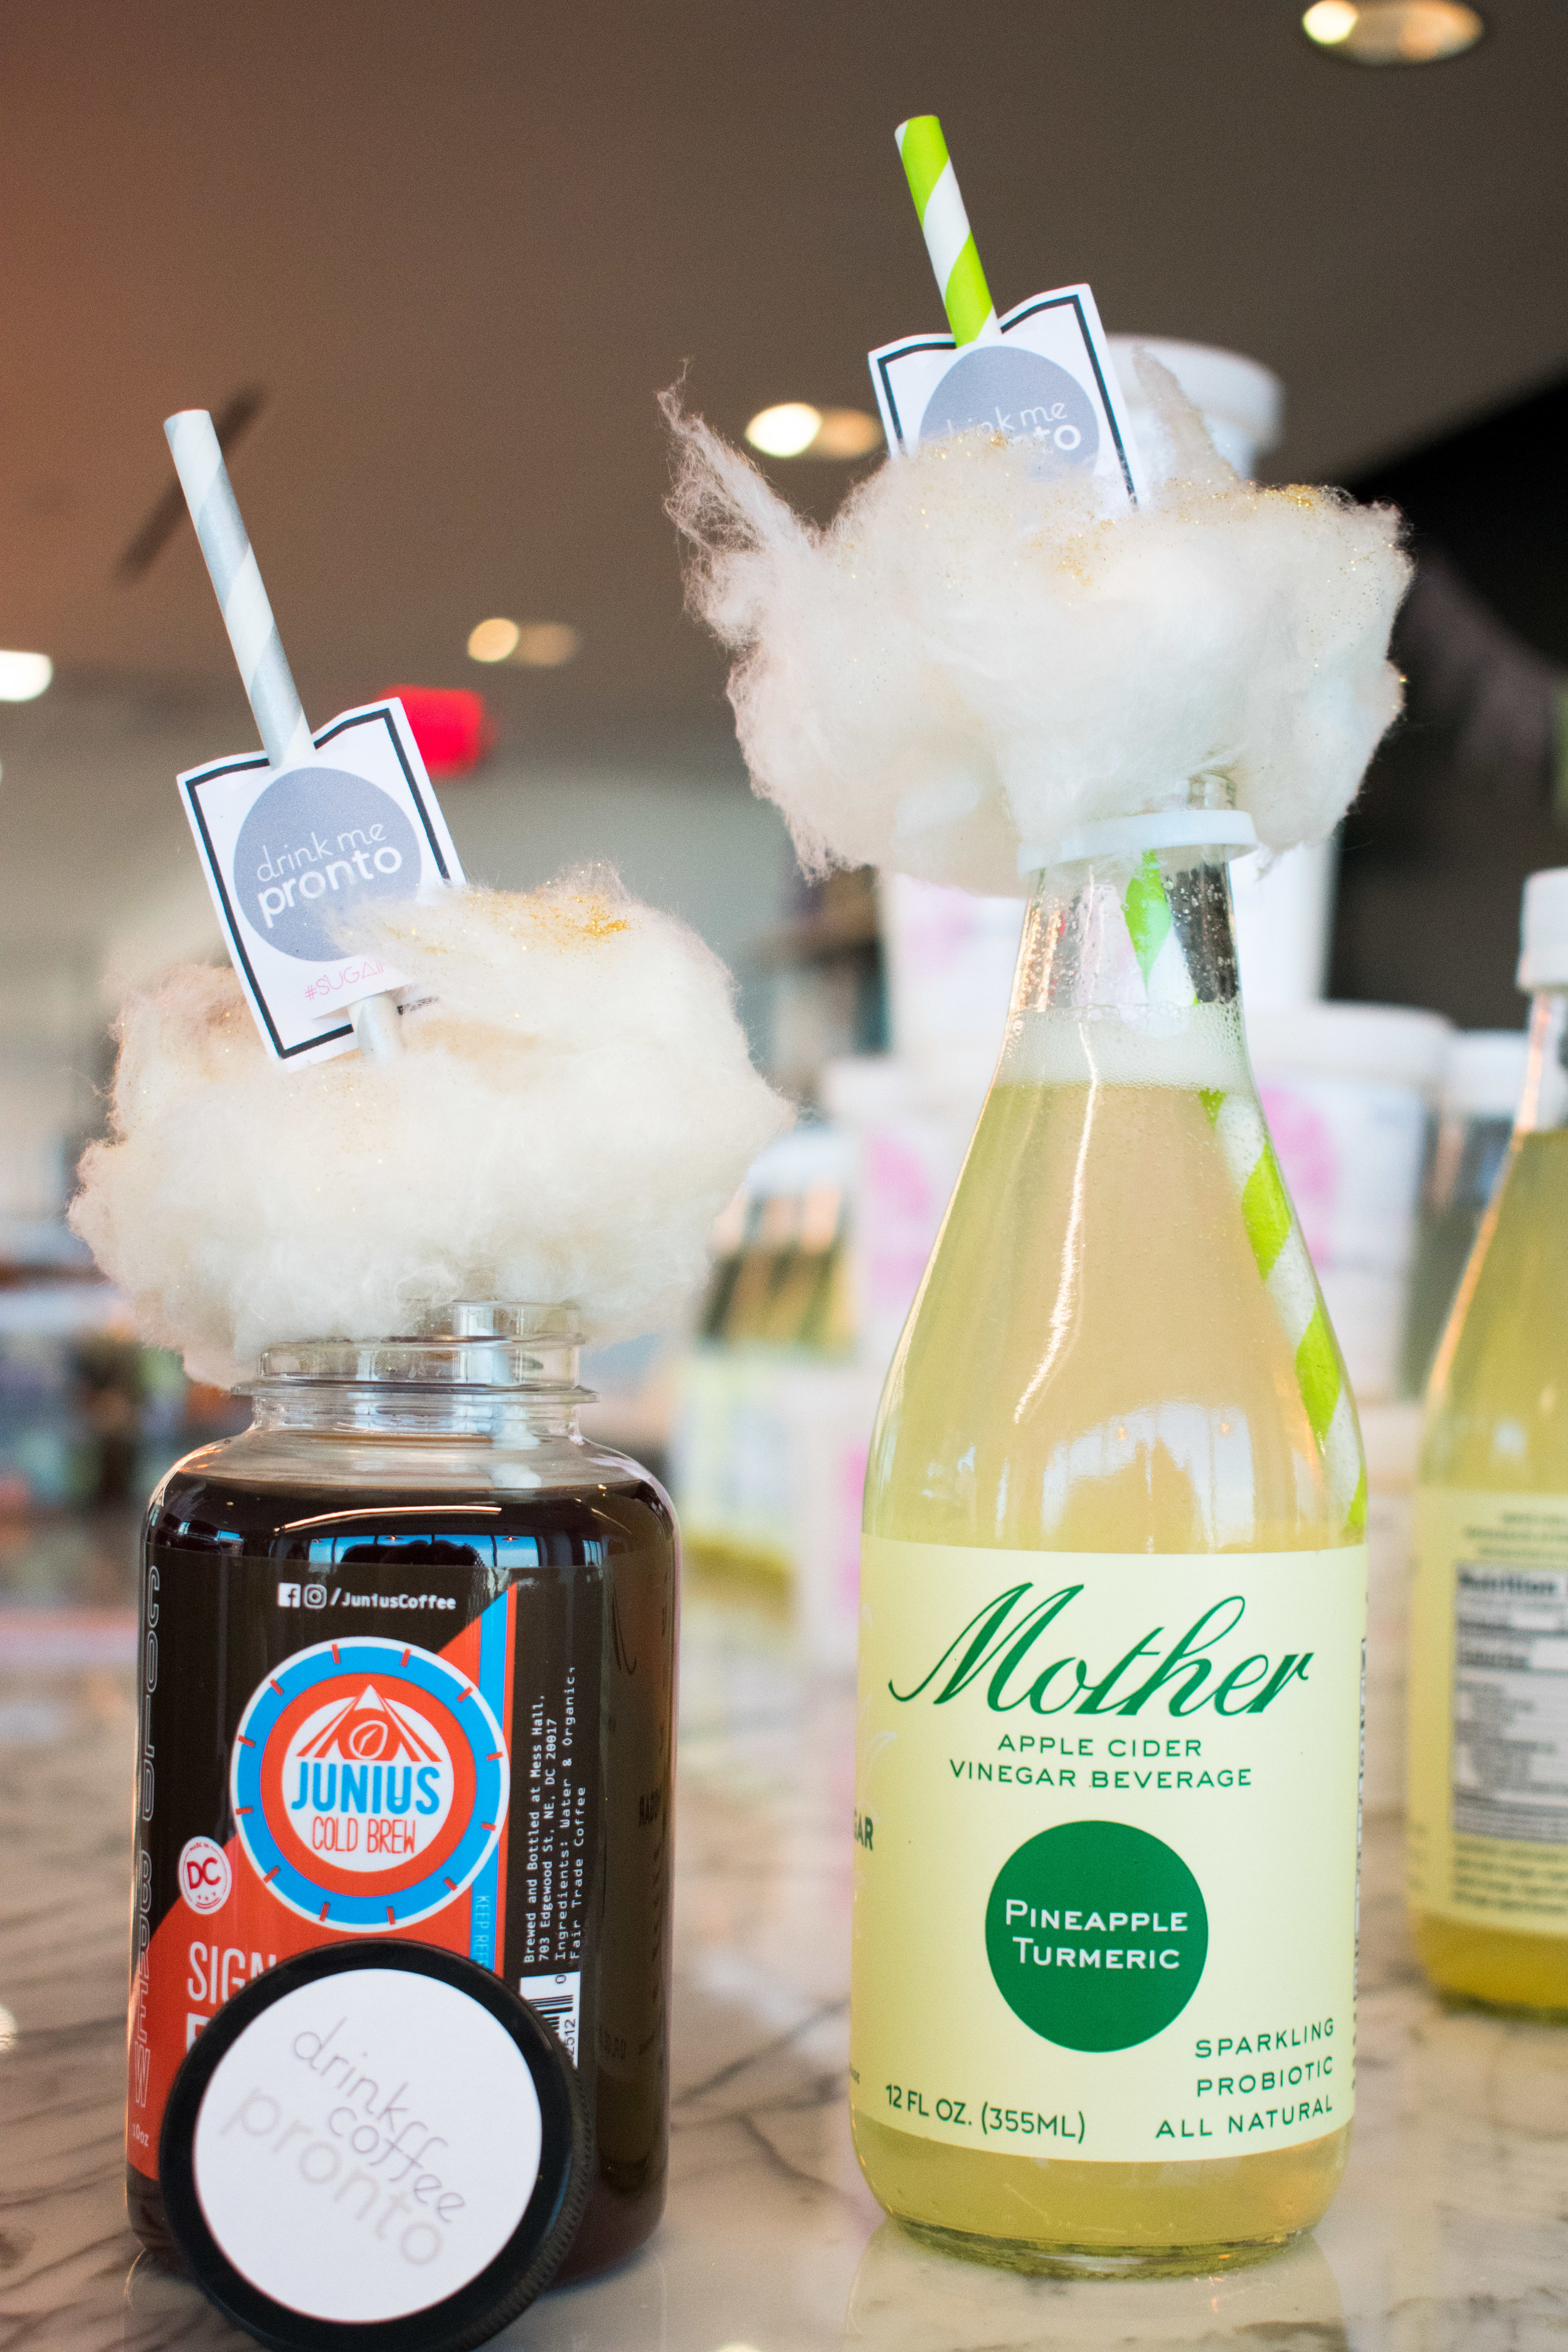 Make Your Life Sweeter Events - Sugaire Organic Cotton Candy